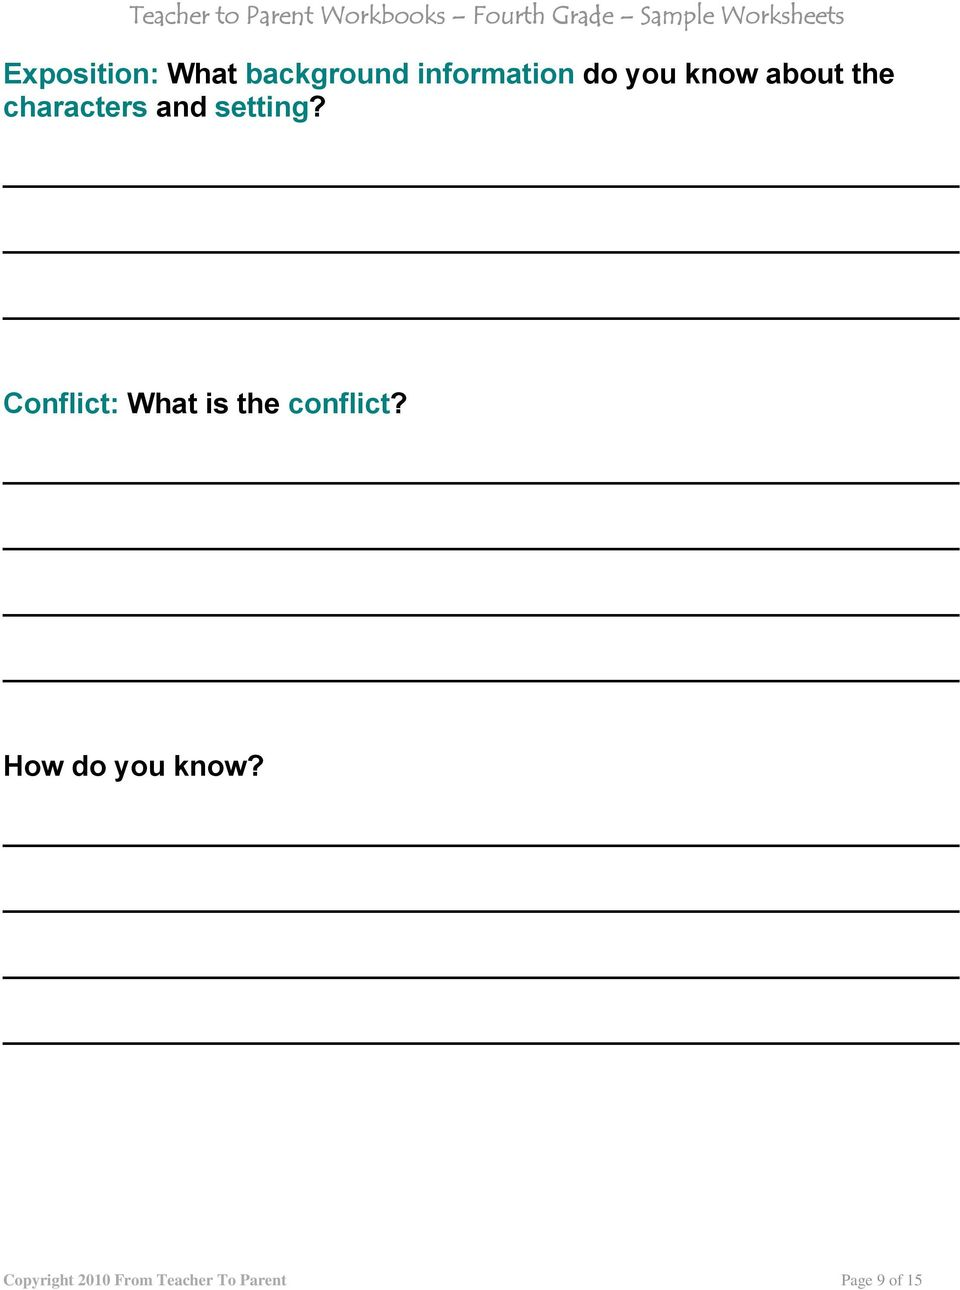 Conflict: What is the conflict?